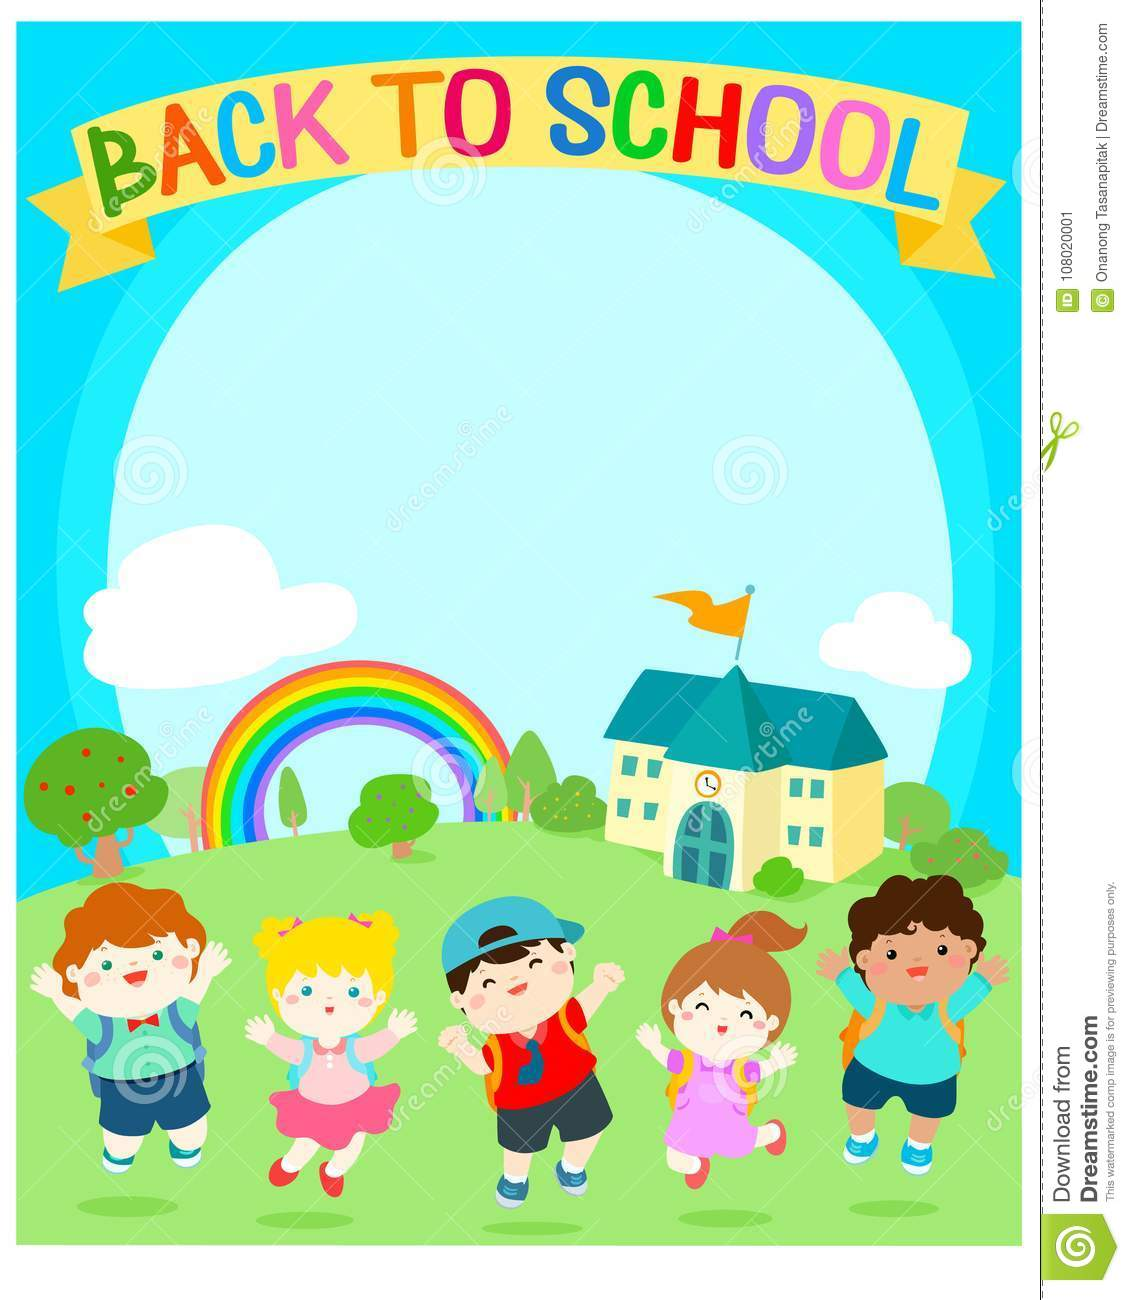 Cute Multiracial Children Joyful At School Background Template For Advertising Posteryour Text Ready Your Message Colorful Rainbow With In